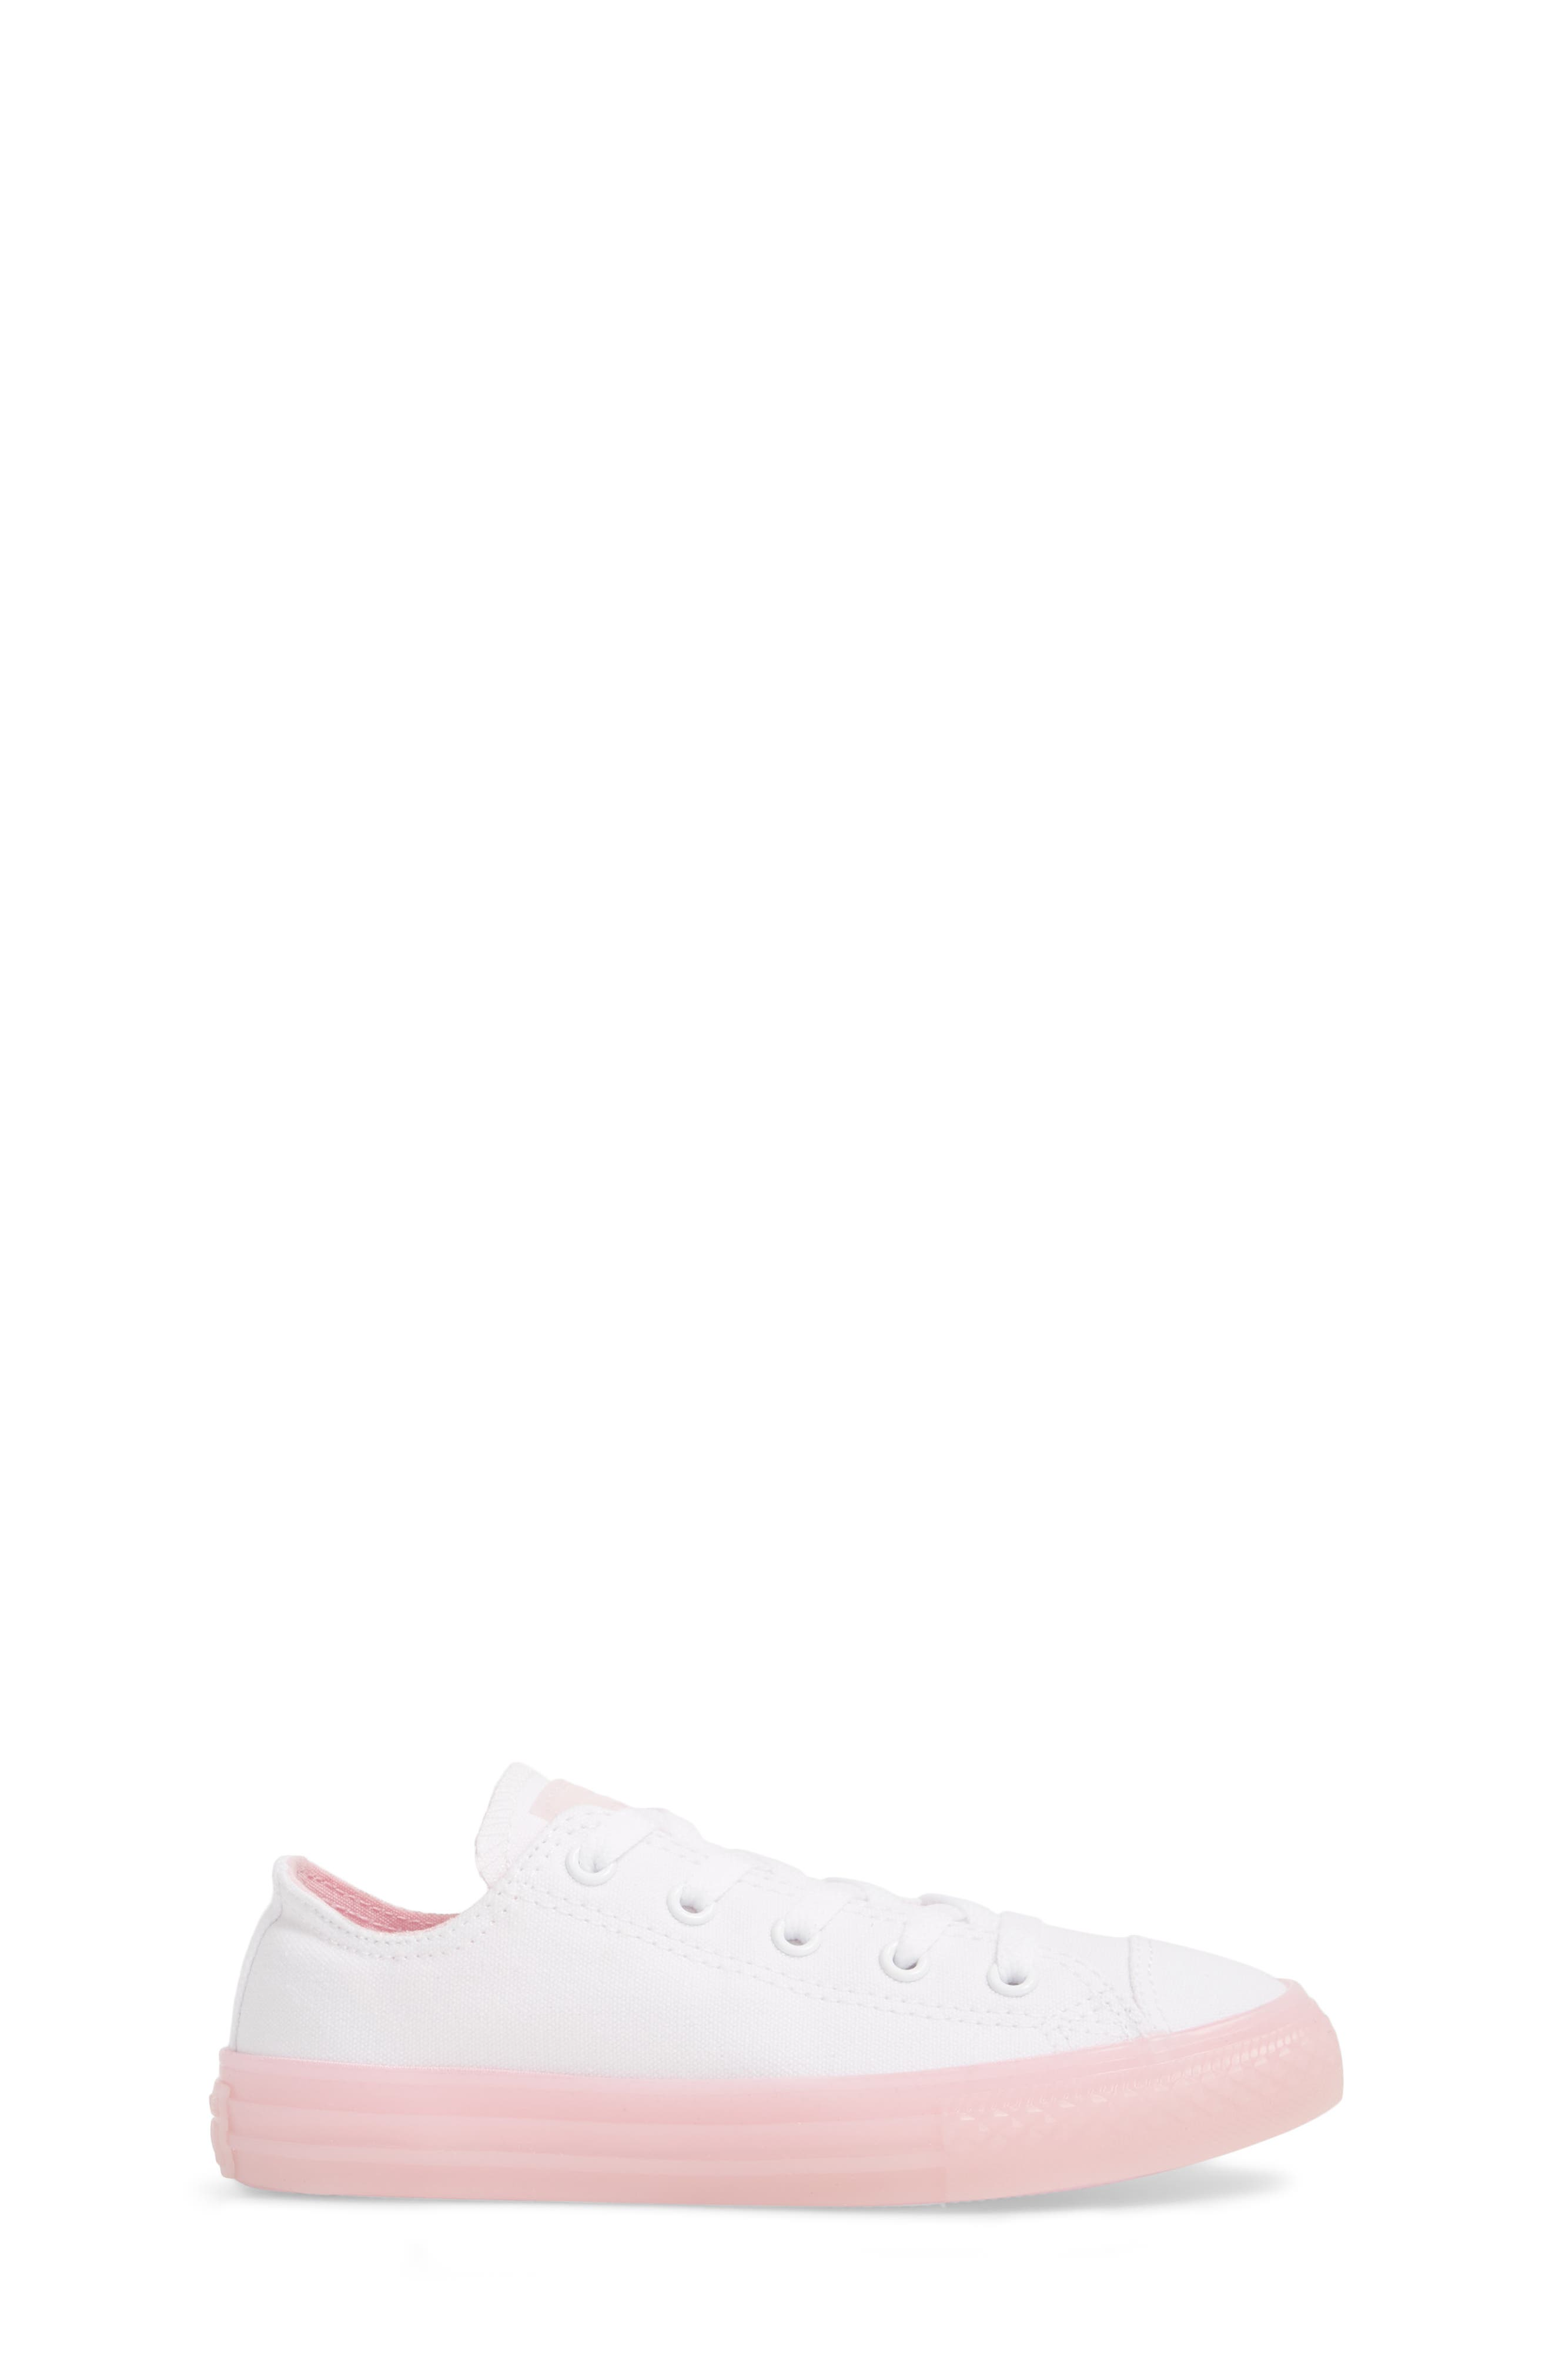 Chuck Taylor<sup>®</sup> All Star<sup>®</sup> Jelly Low Top Sneaker,                             Alternate thumbnail 3, color,                             WHITE/ CHERRY